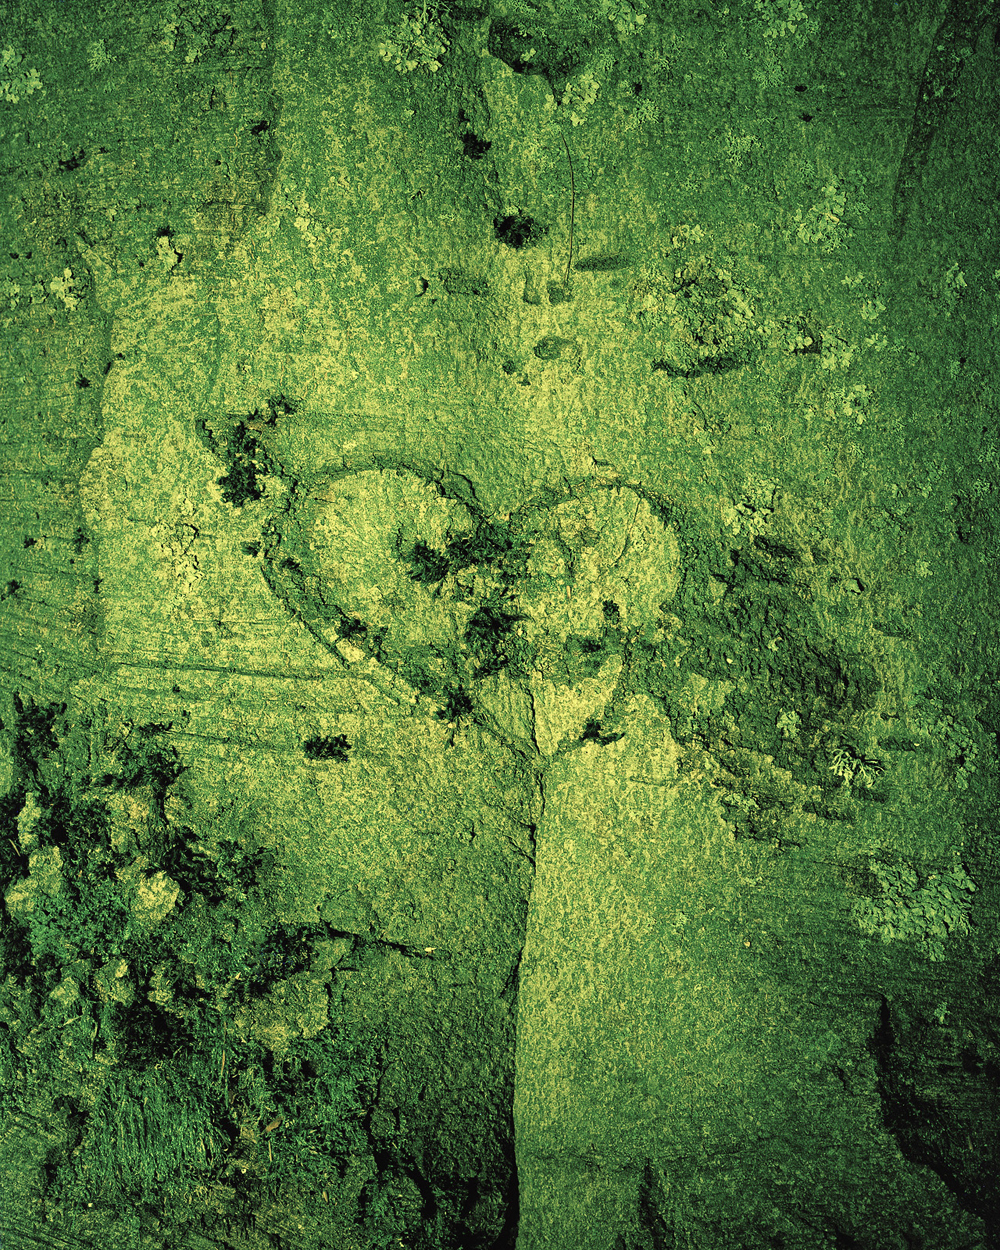 Eirik Johnson, GREEN VALENTINE, 2012, archival transparency and LED light box, 14 x 11 inches, edition of 5, $2800.